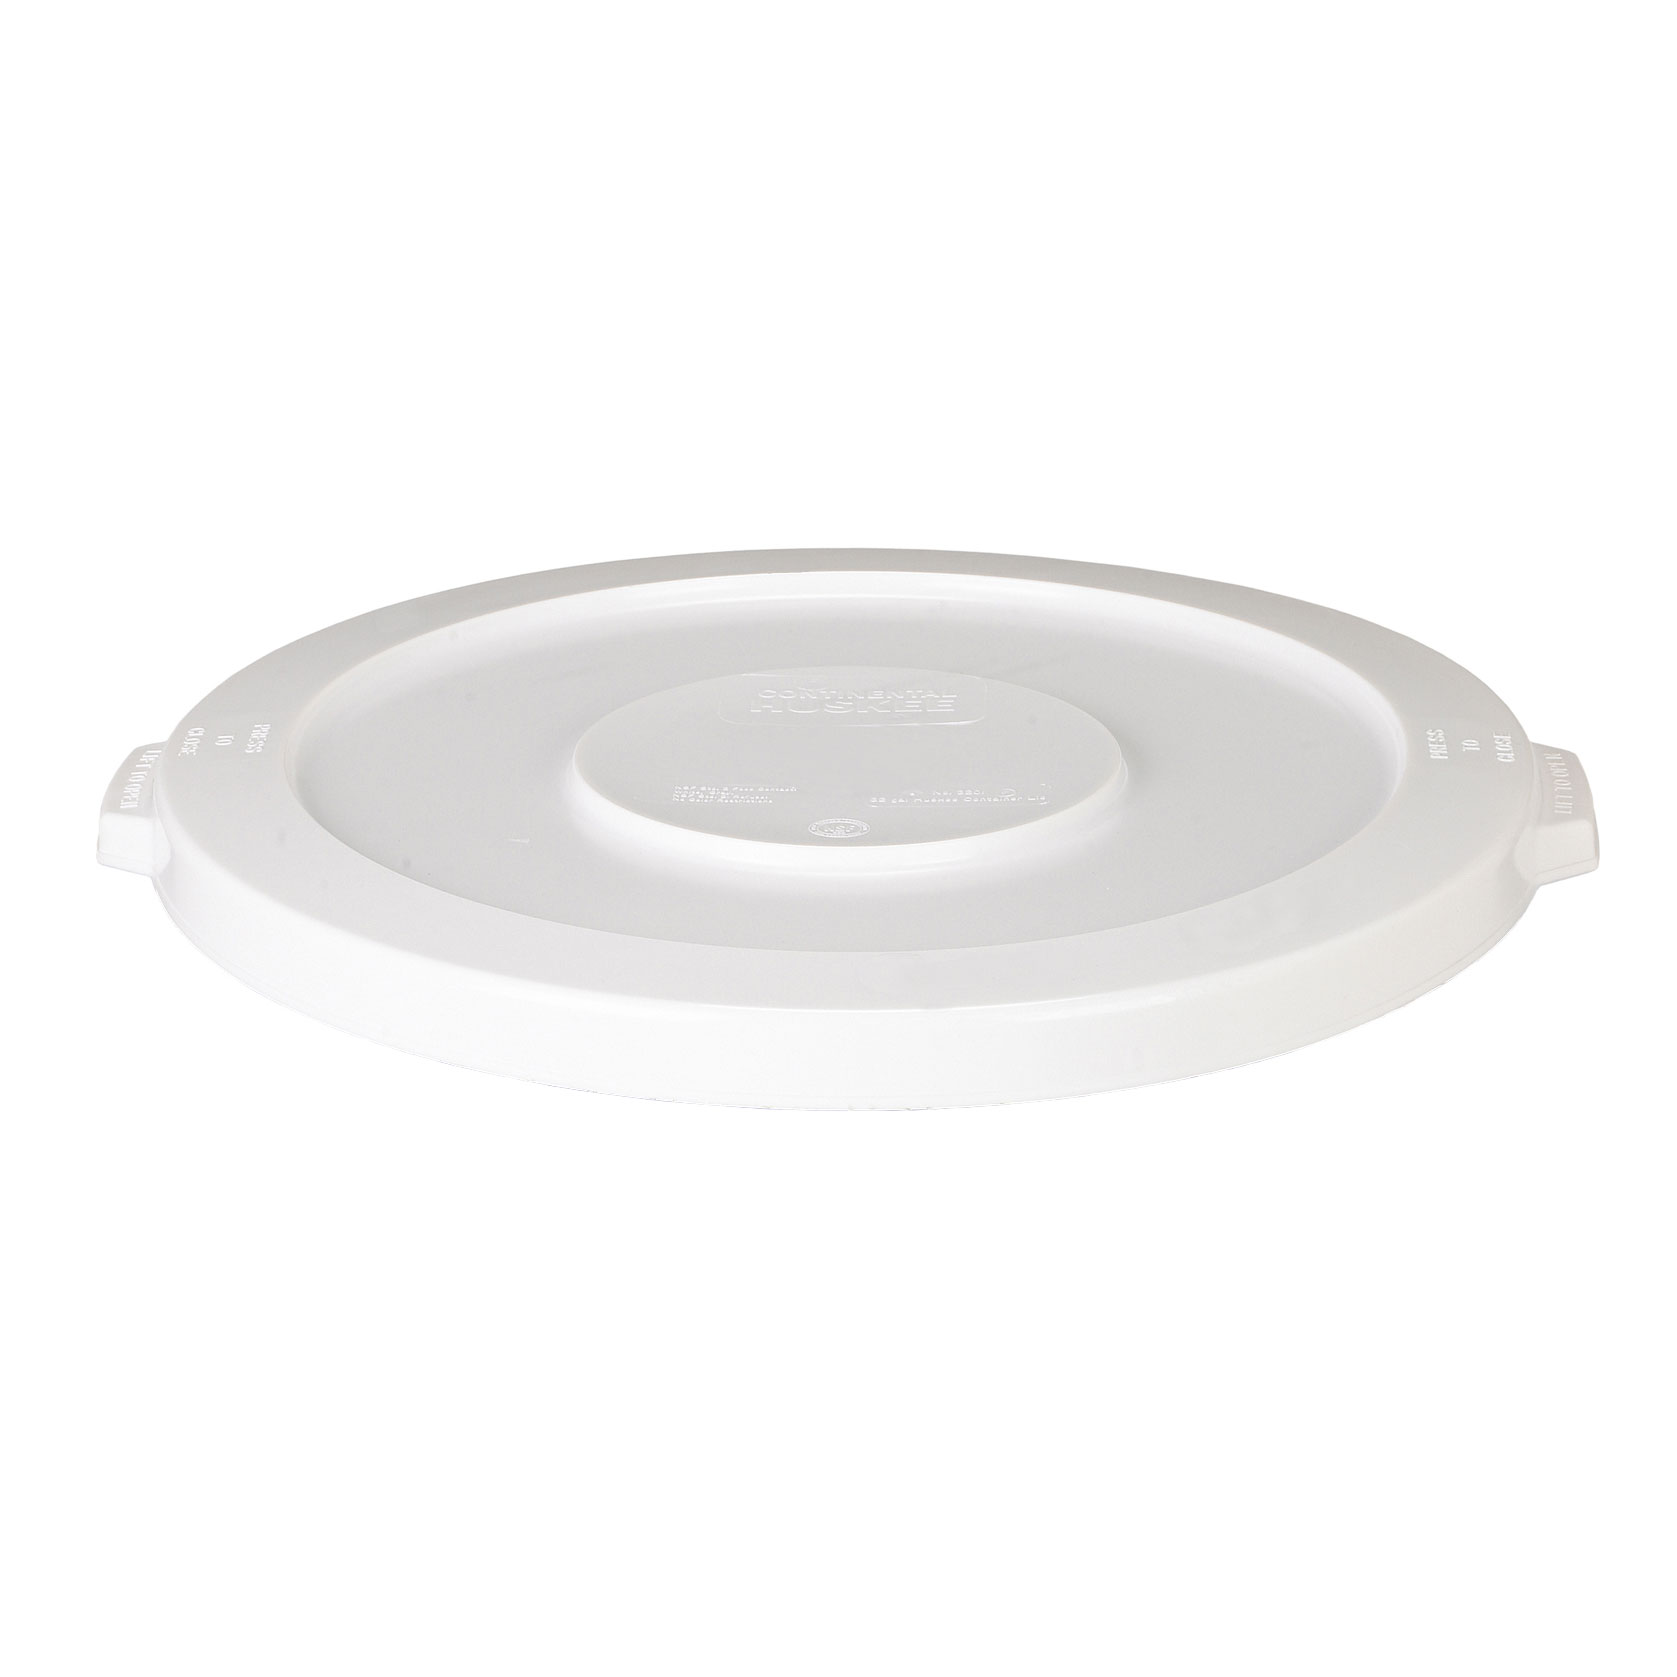 Royal Industries CCP 2001WH trash receptacle lid / top